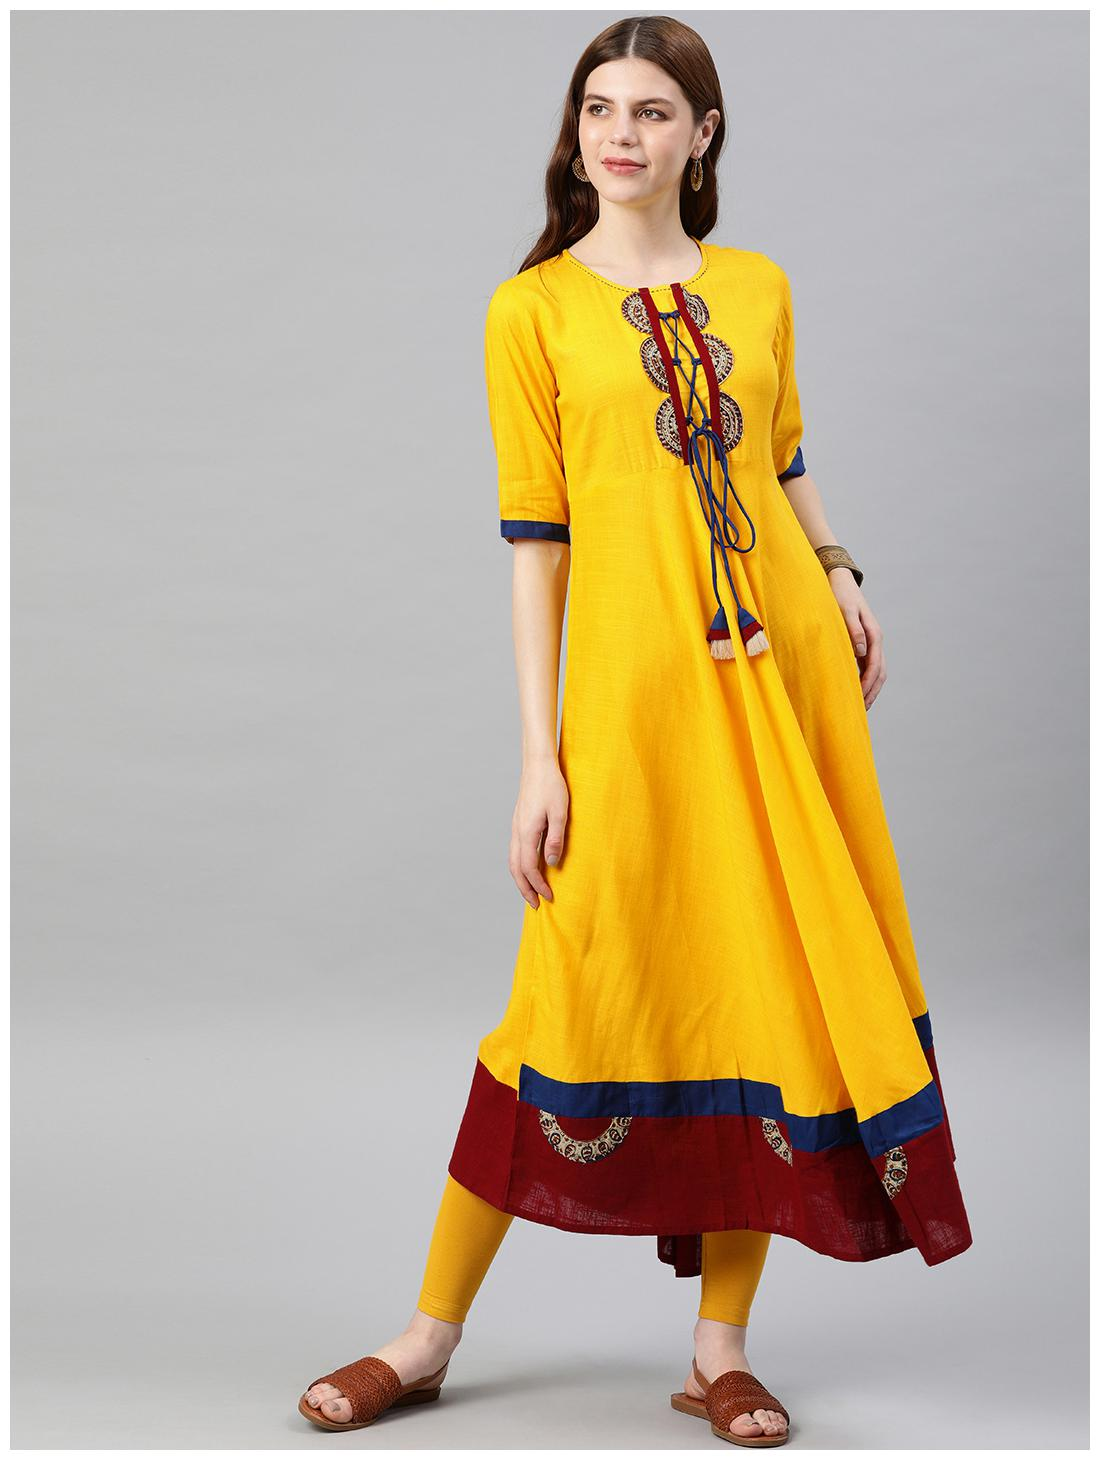 https://assetscdn1.paytm.com/images/catalog/product/A/AP/APPBOLLYWOOD-STAASH129650BAD9D574/1578043165707_9.jpg